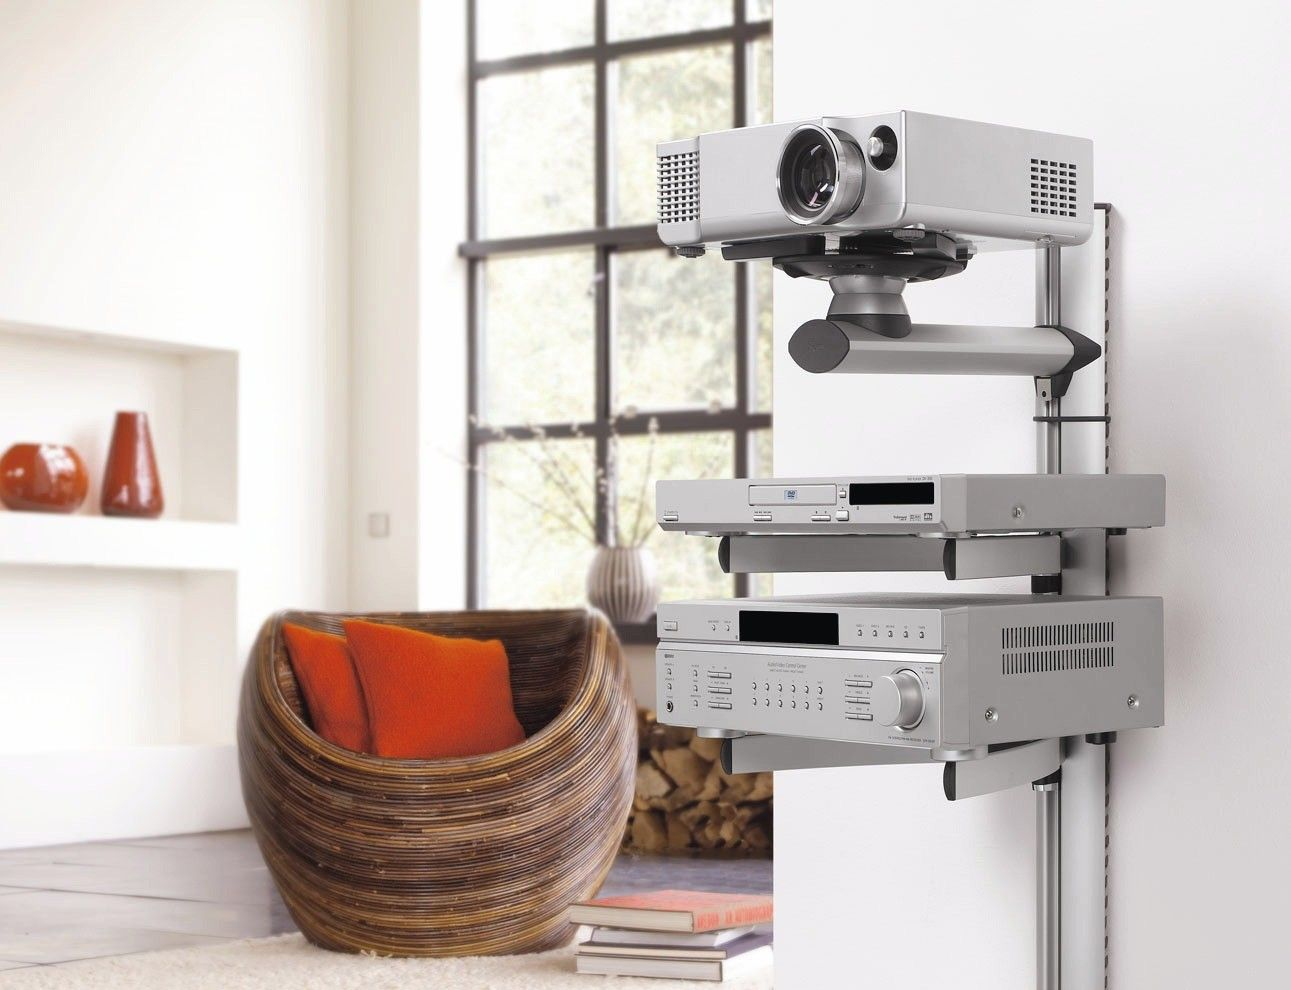 mount your beamer projector on the wall vogelu0027s epw projector mount - Projector Wall Mount